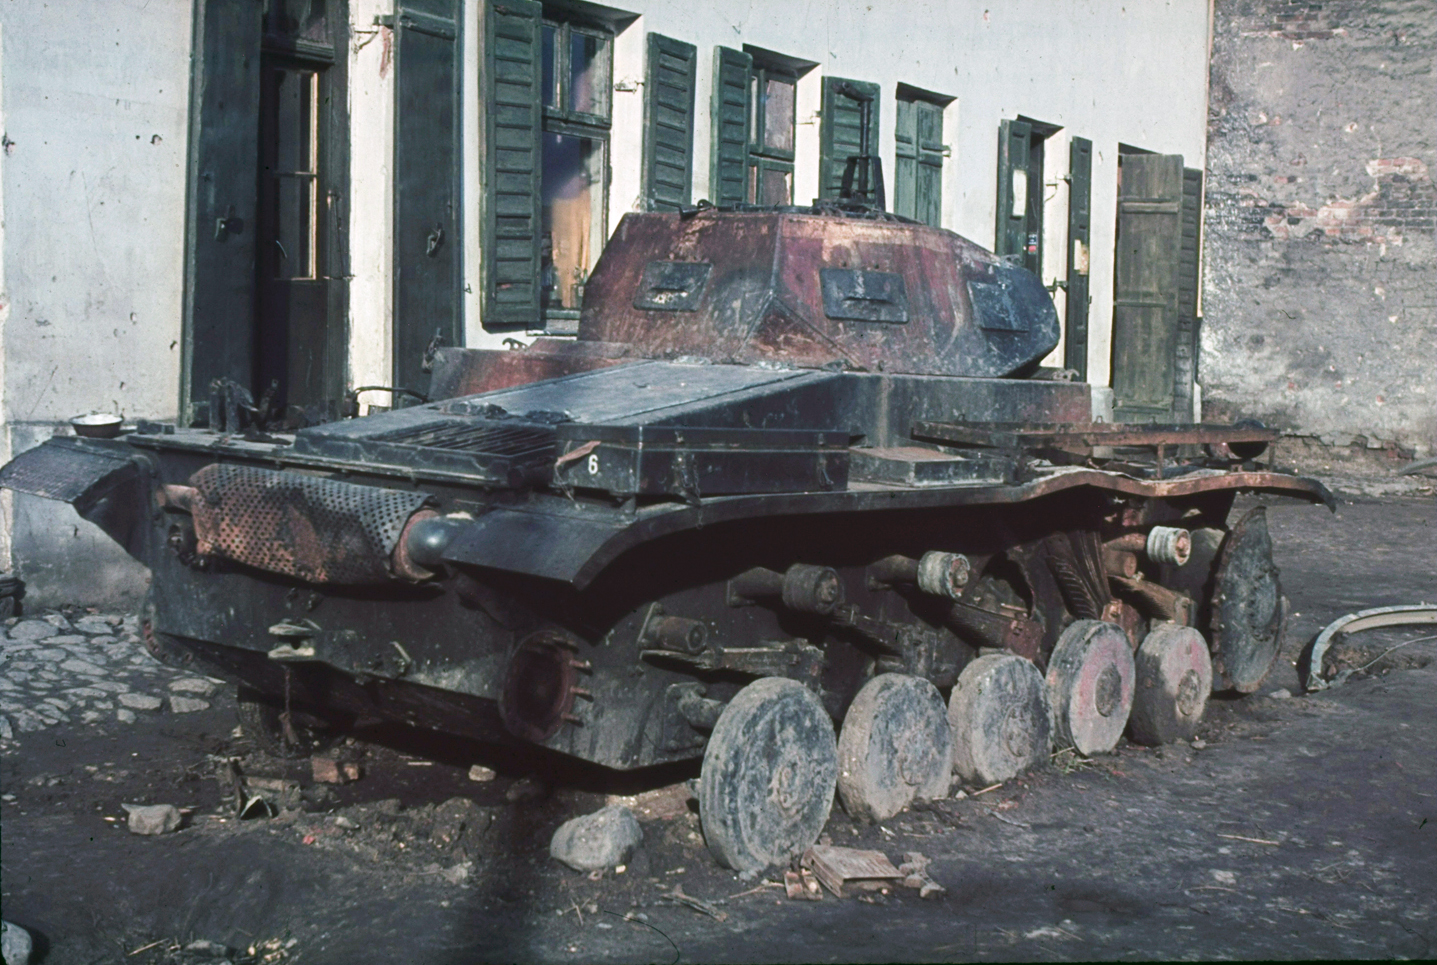 Burned-out tank, Warsaw, 1939